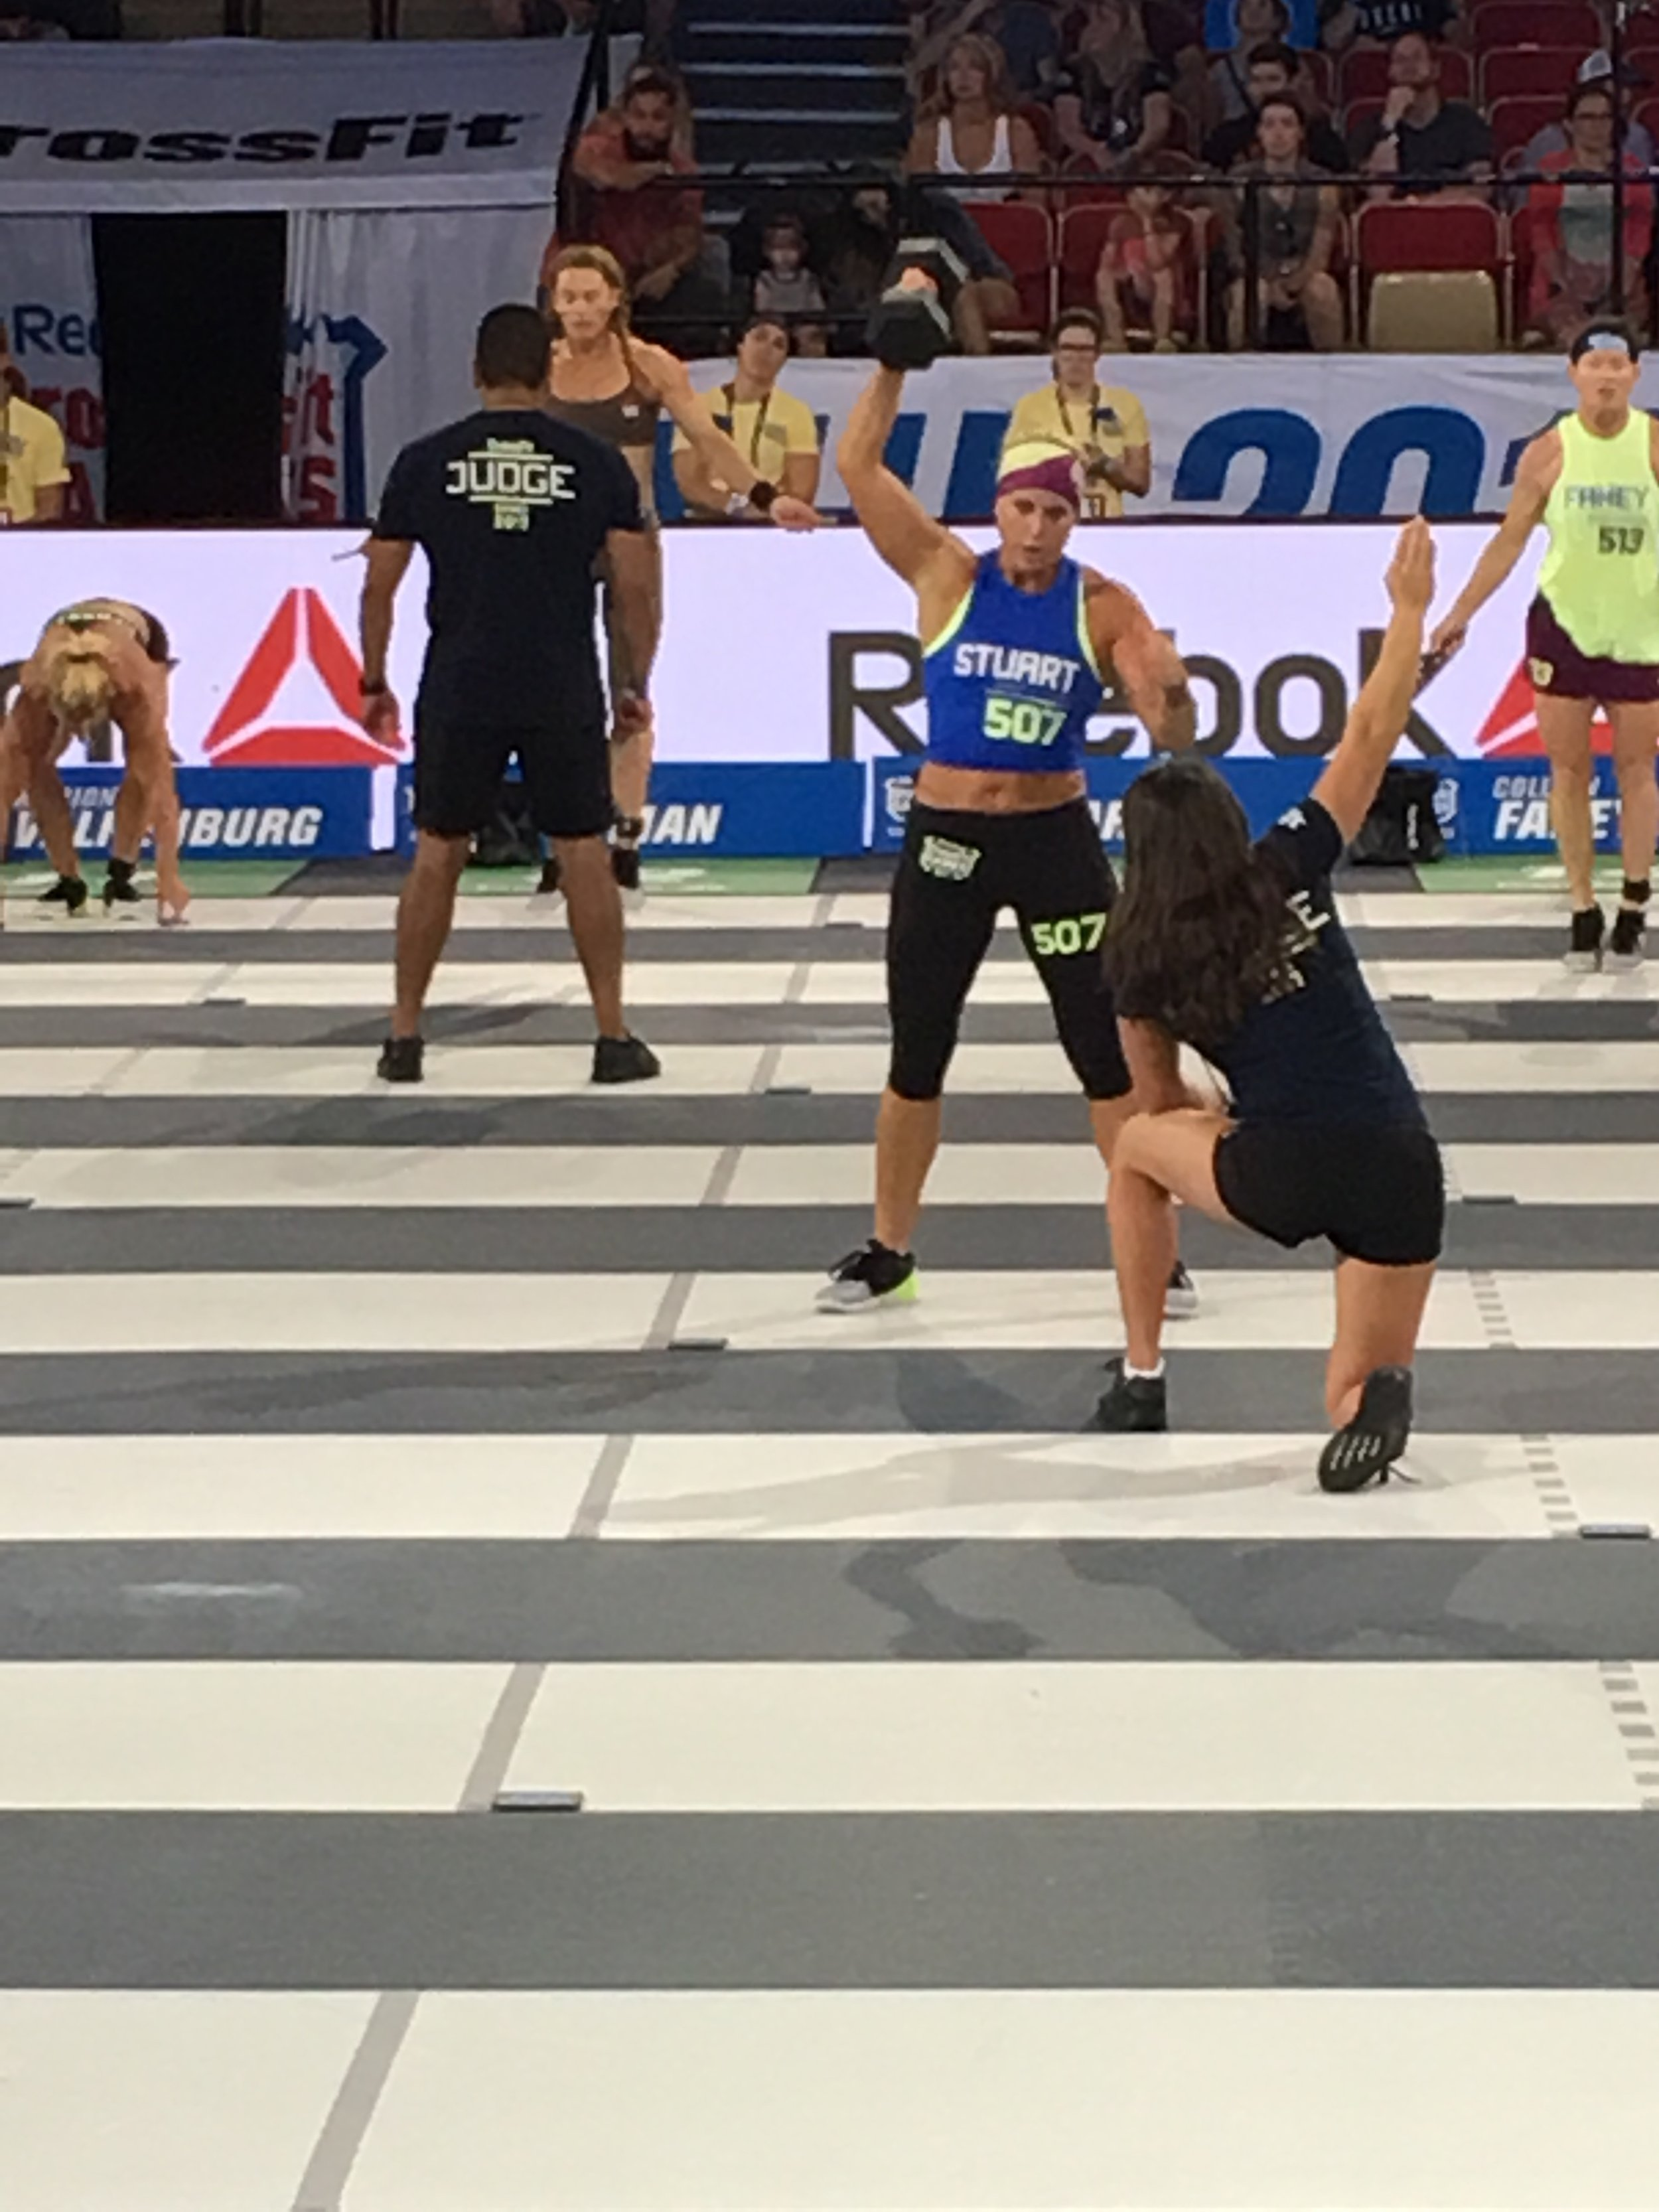 Diane finished 4th in the 50-54 division at the 2017 CrossFit Games!